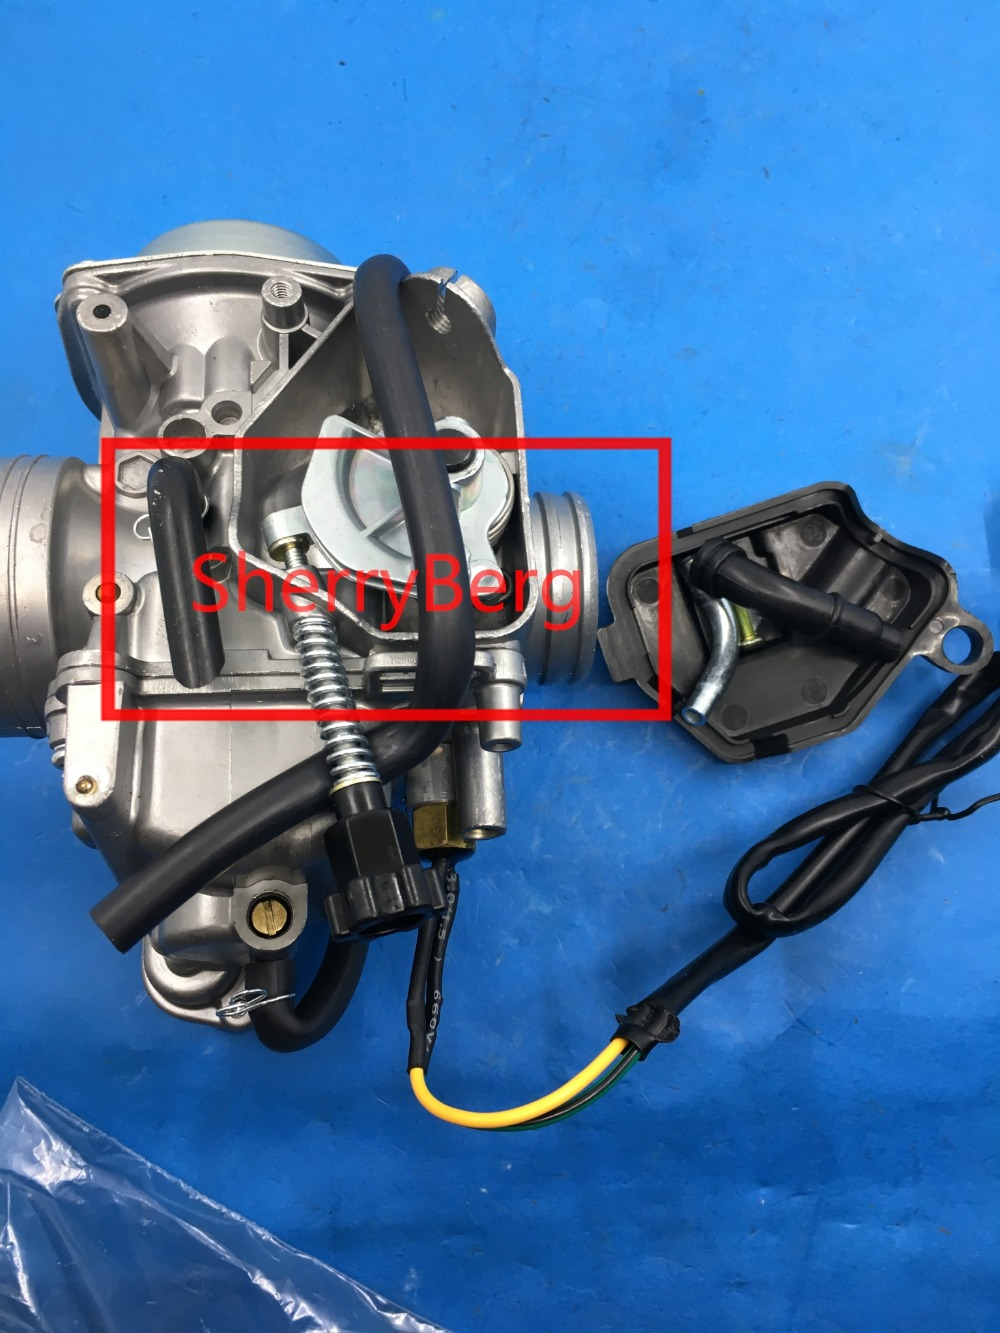 Carb Carburetor For HONDA TRX 300 Fourtrax 2X4 Carb Carburetor 1994 1995 1996 1997 1998 1999  carburetor with electrical heater dick francis felix francis silks